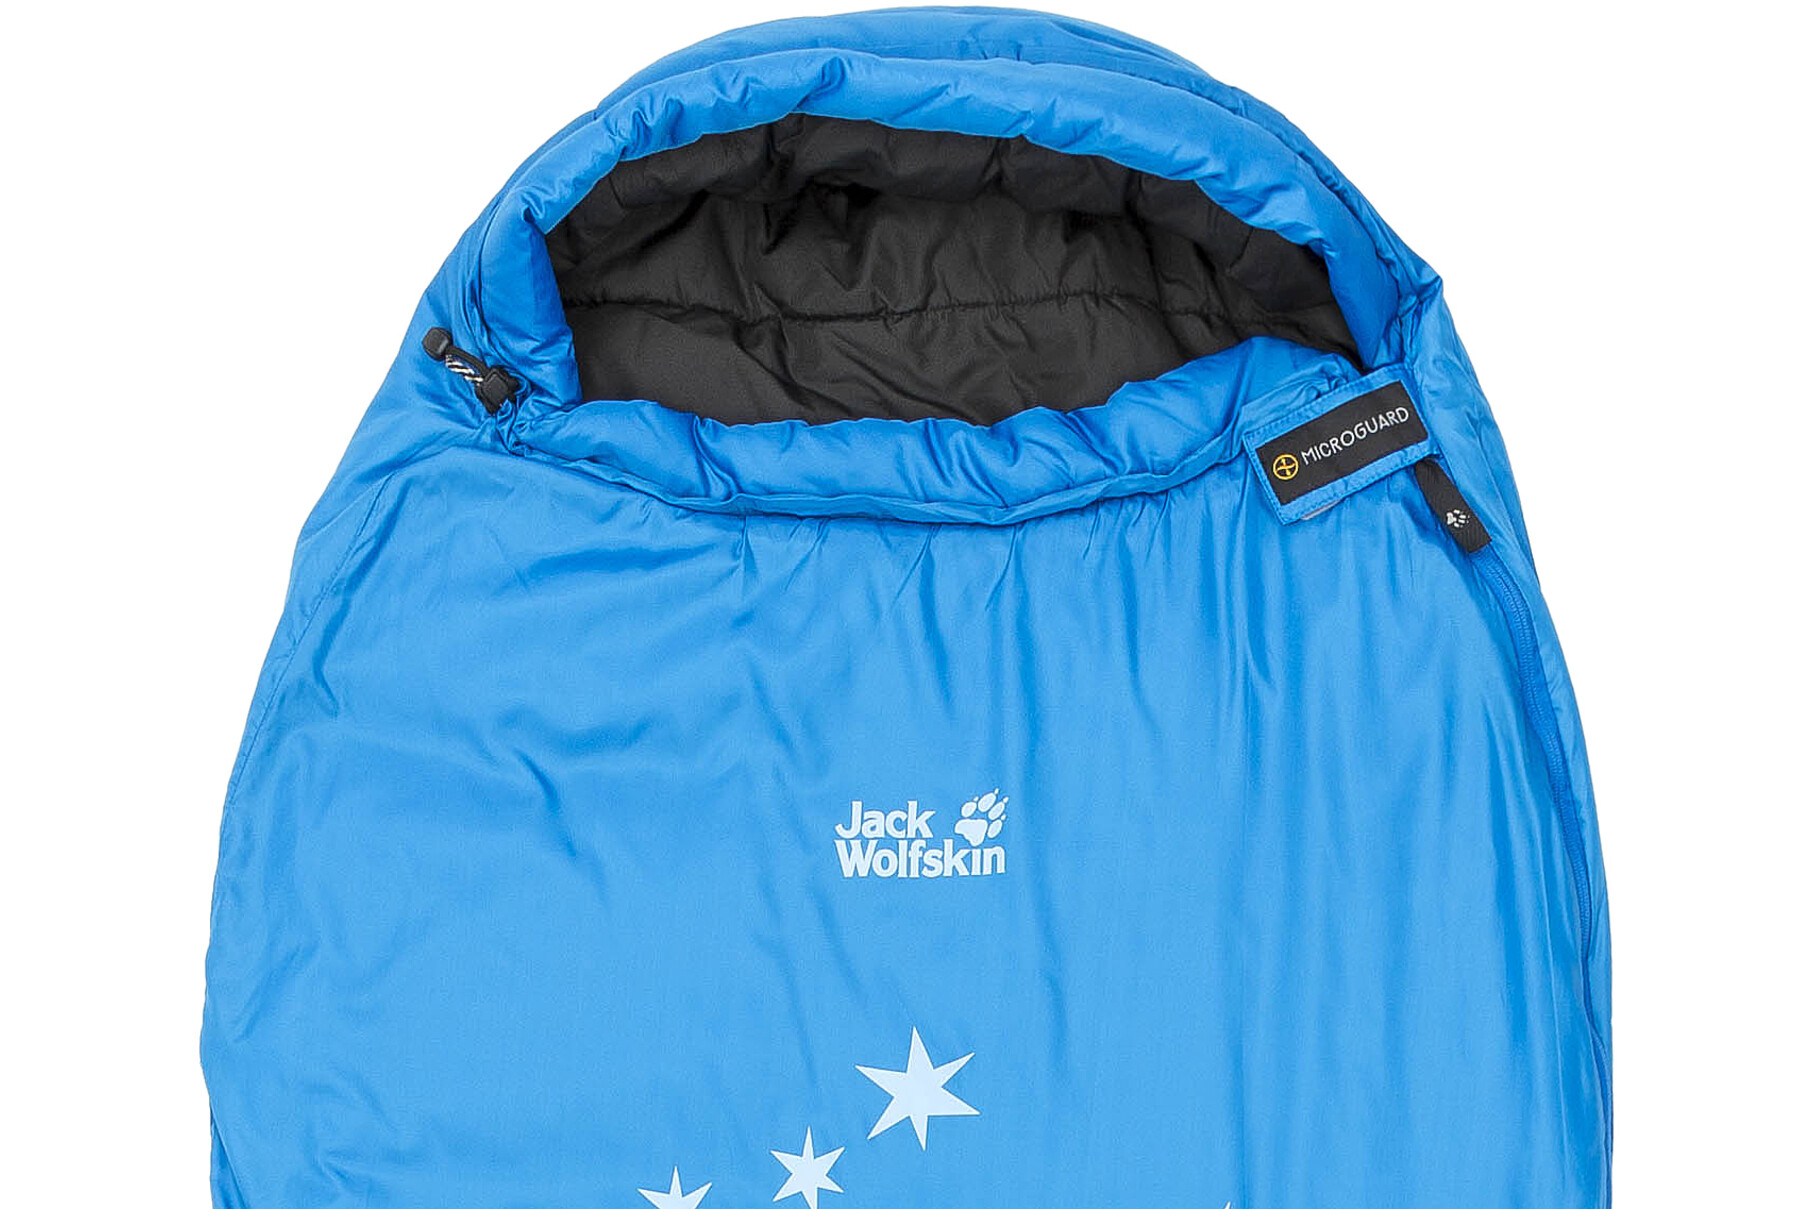 783fd53cd62 Jack Wolfskin Grow Up Star Sleeping Bag Children blue at Bikester.co.uk